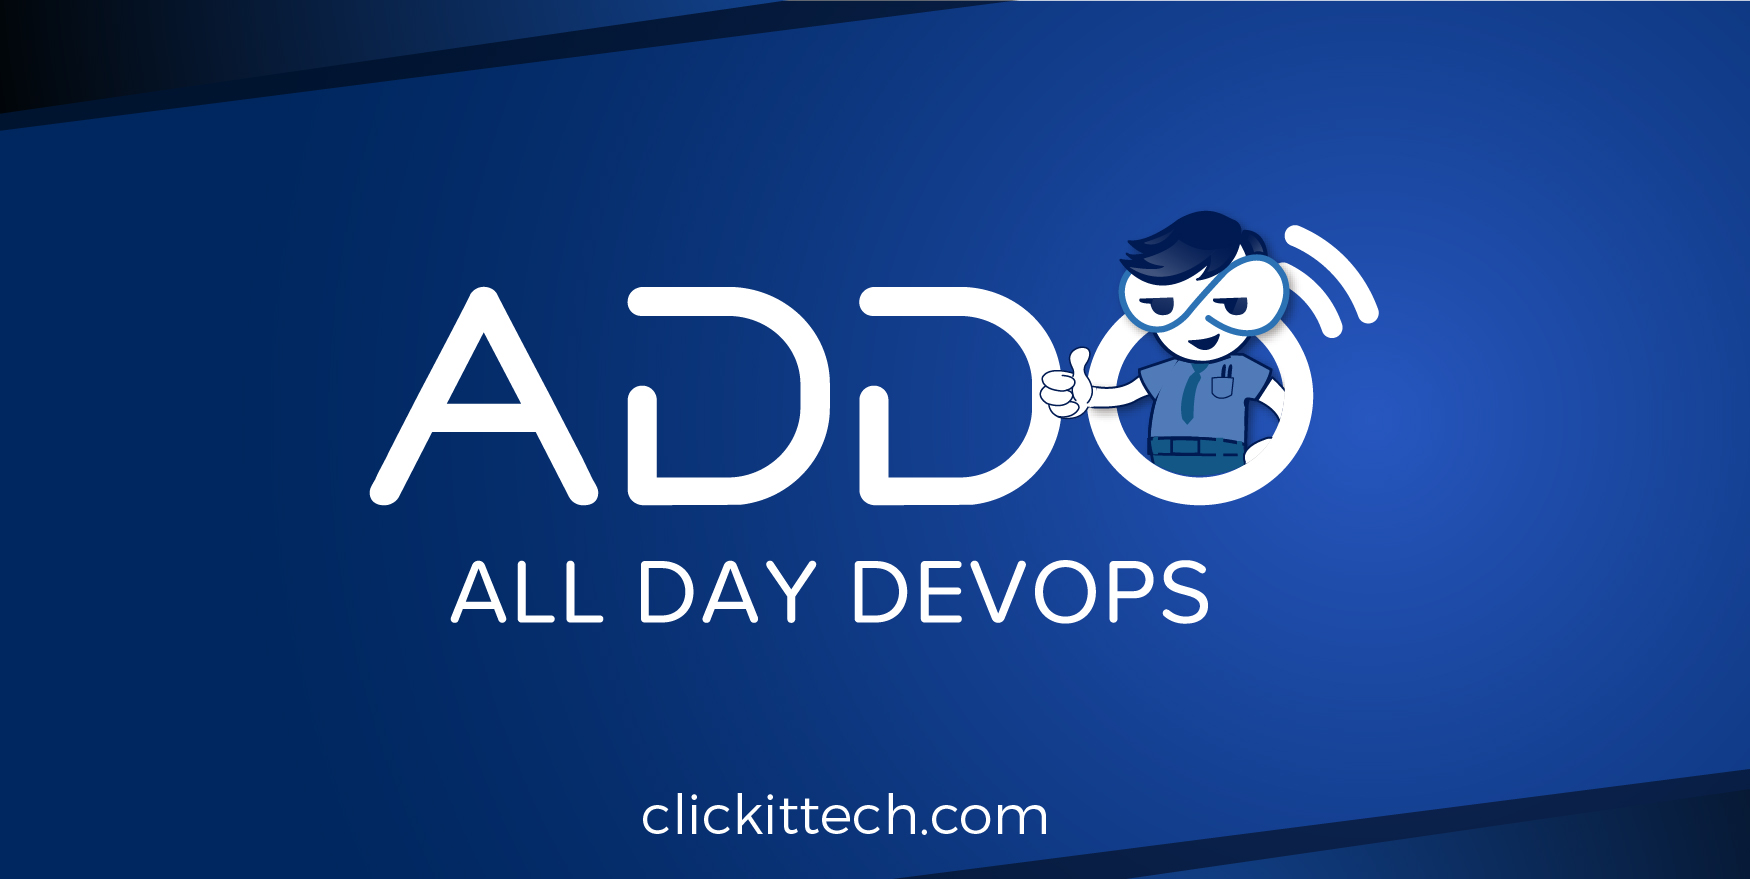 All Day DevOps 2019